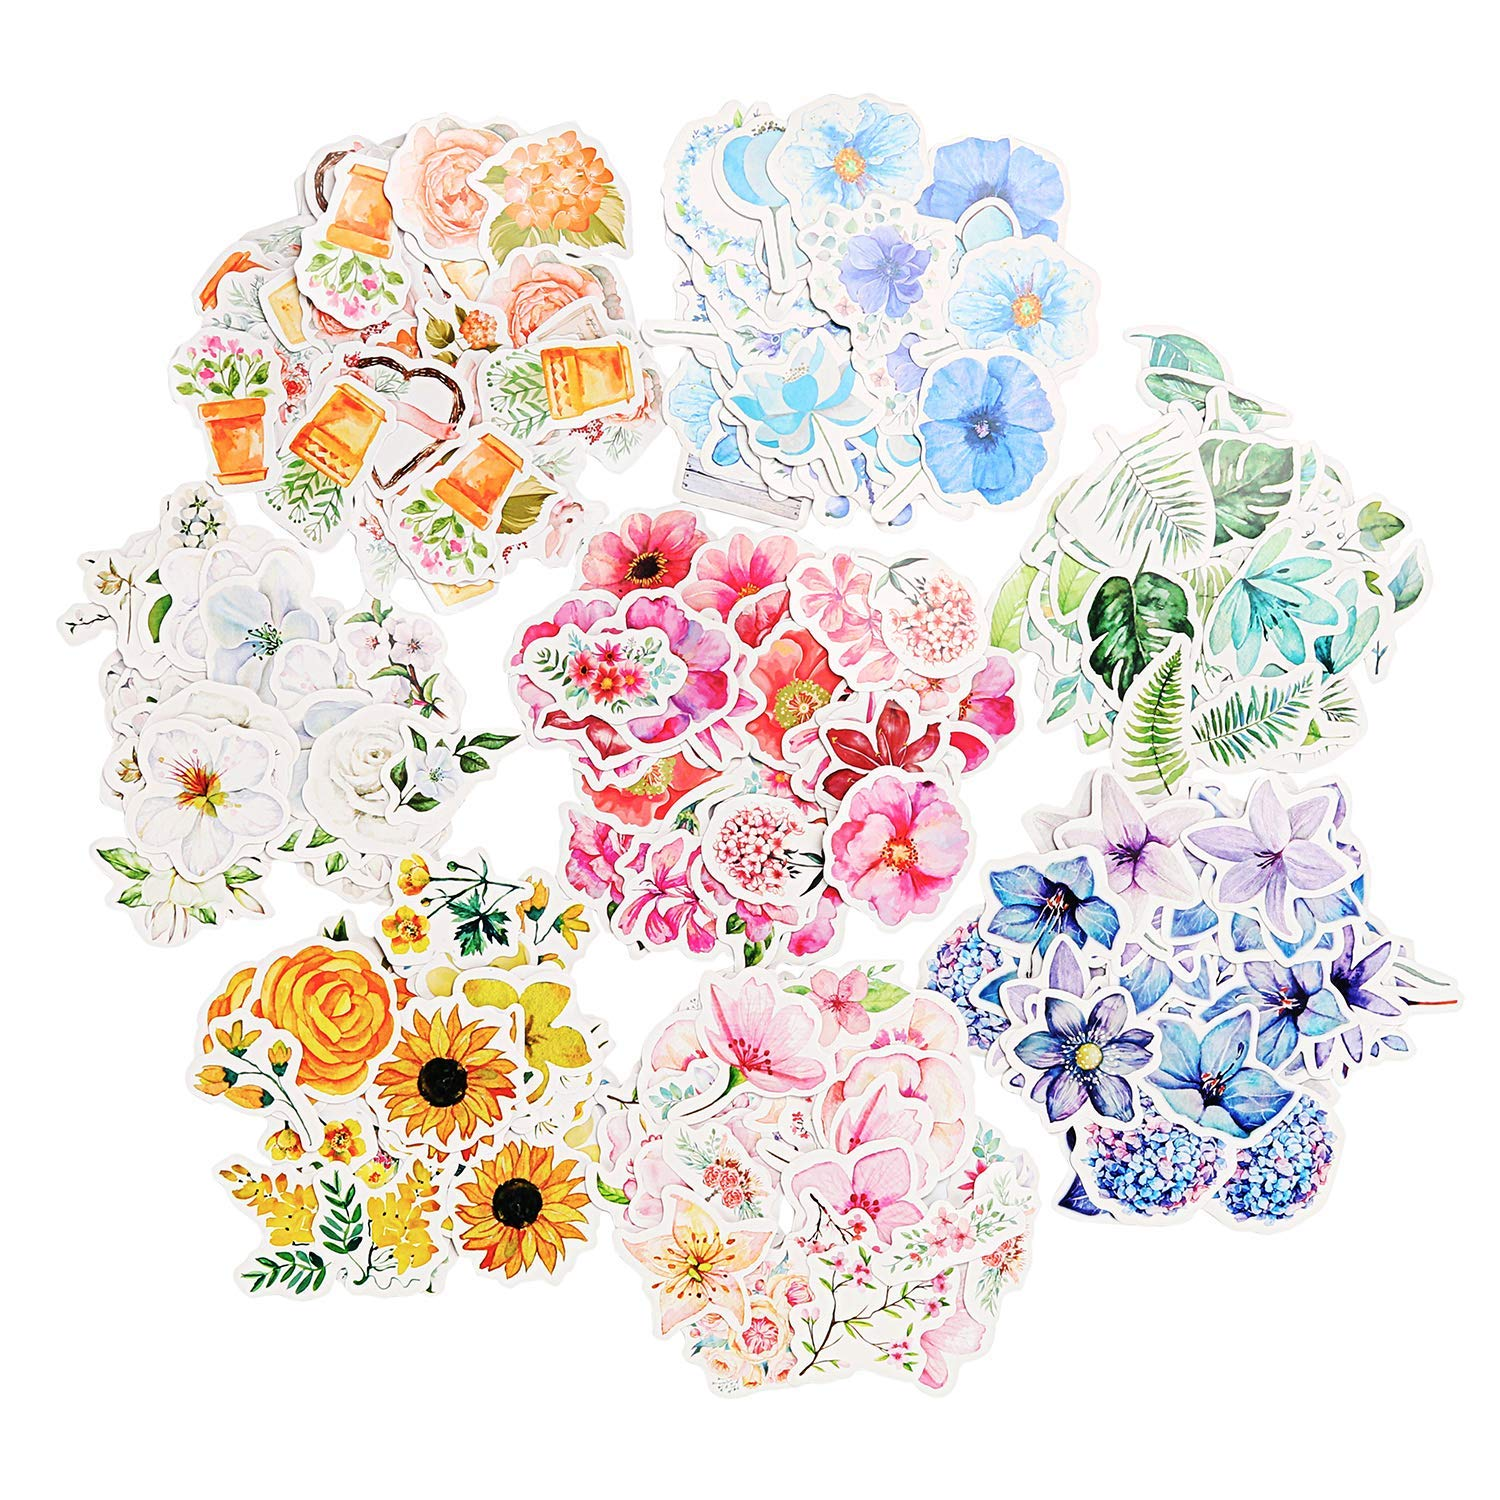 Molshine 360pcs various special shaped stickers flower series decals for personalize laptops skateboards luggage cars bumpers bikes bicyclesbooks 8